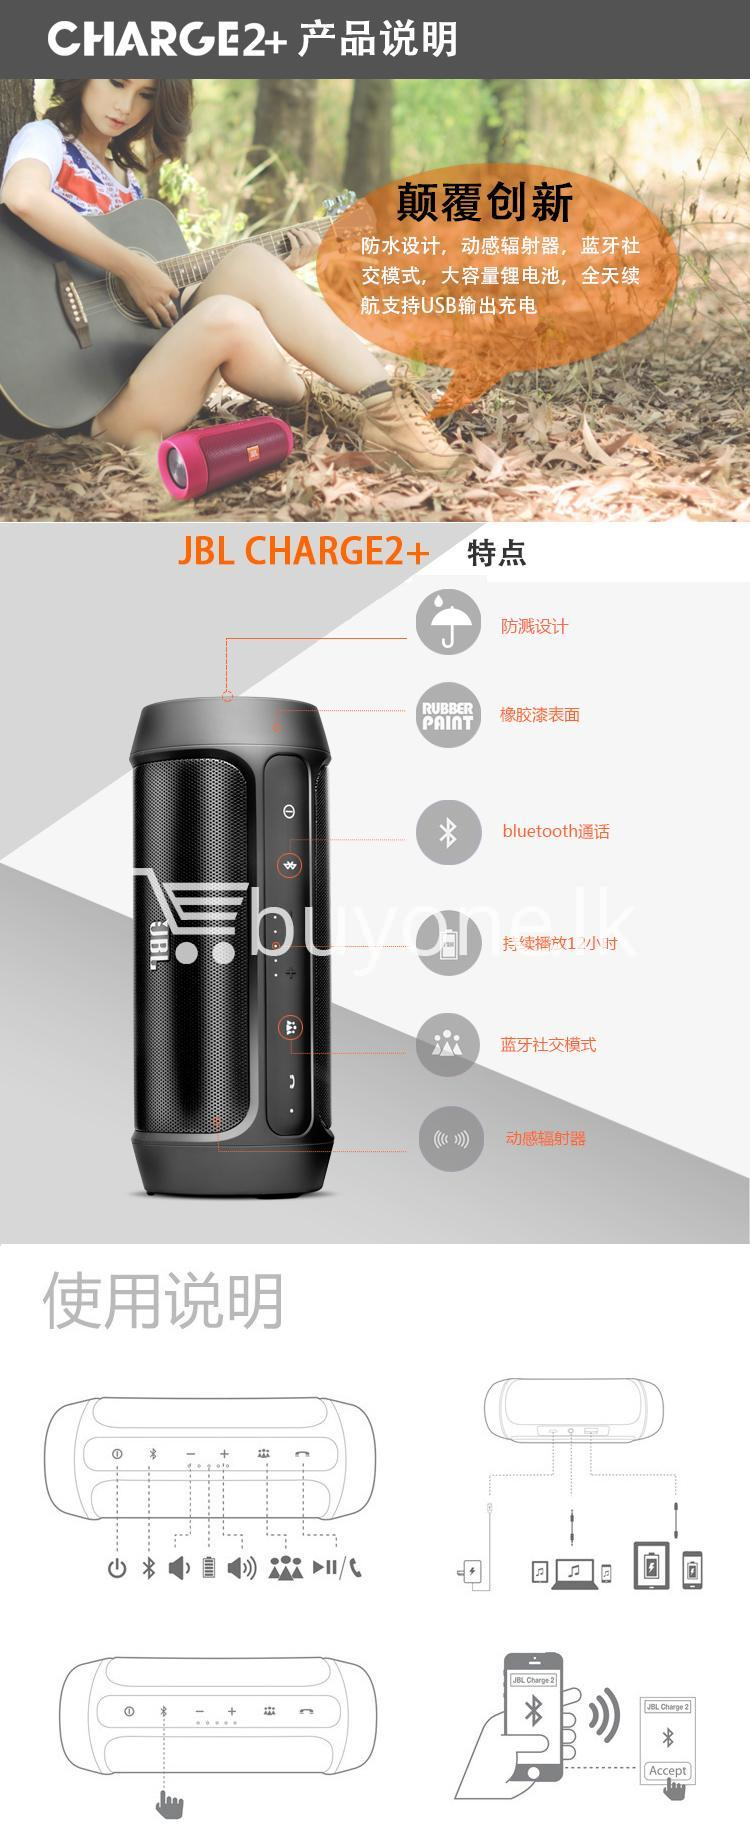 jbl charge 2 portable bluetooth speaker with usb charger power bank mobile phone accessories special best offer buy one lk sri lanka 08941 - JBL Charge 2 Portable Bluetooth Speaker with USB Charger Power Bank